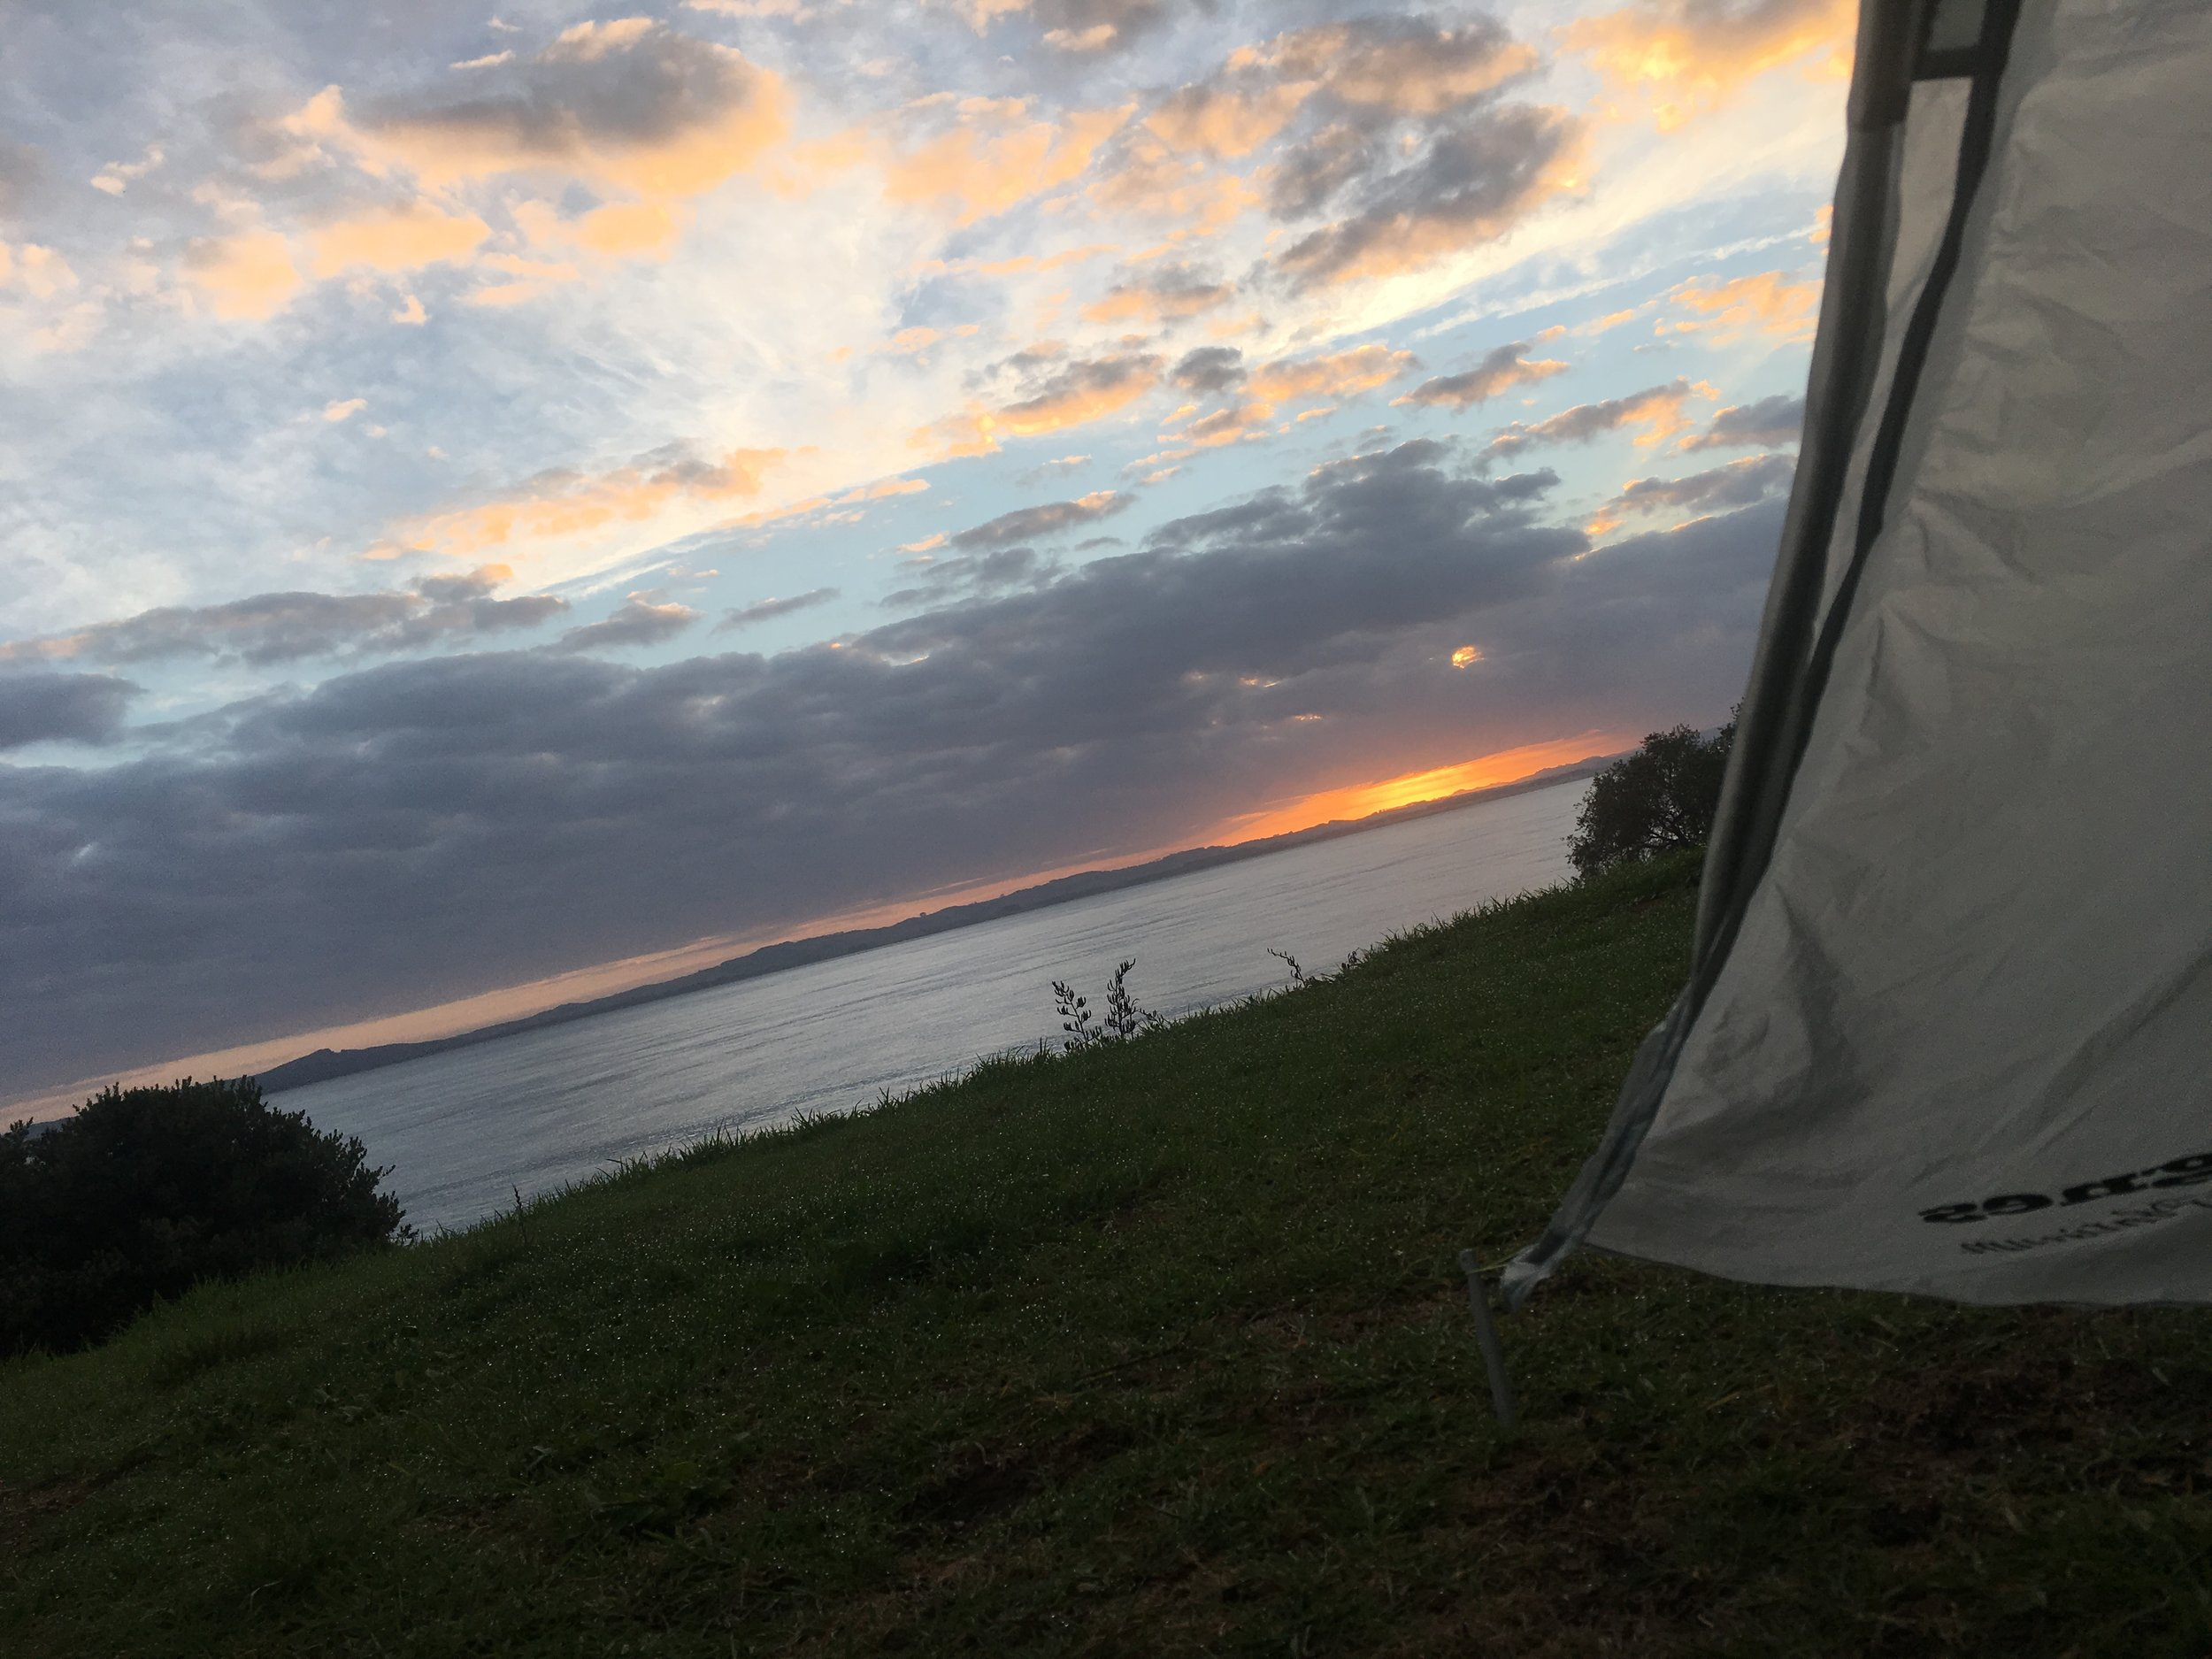 Morning view from my tent